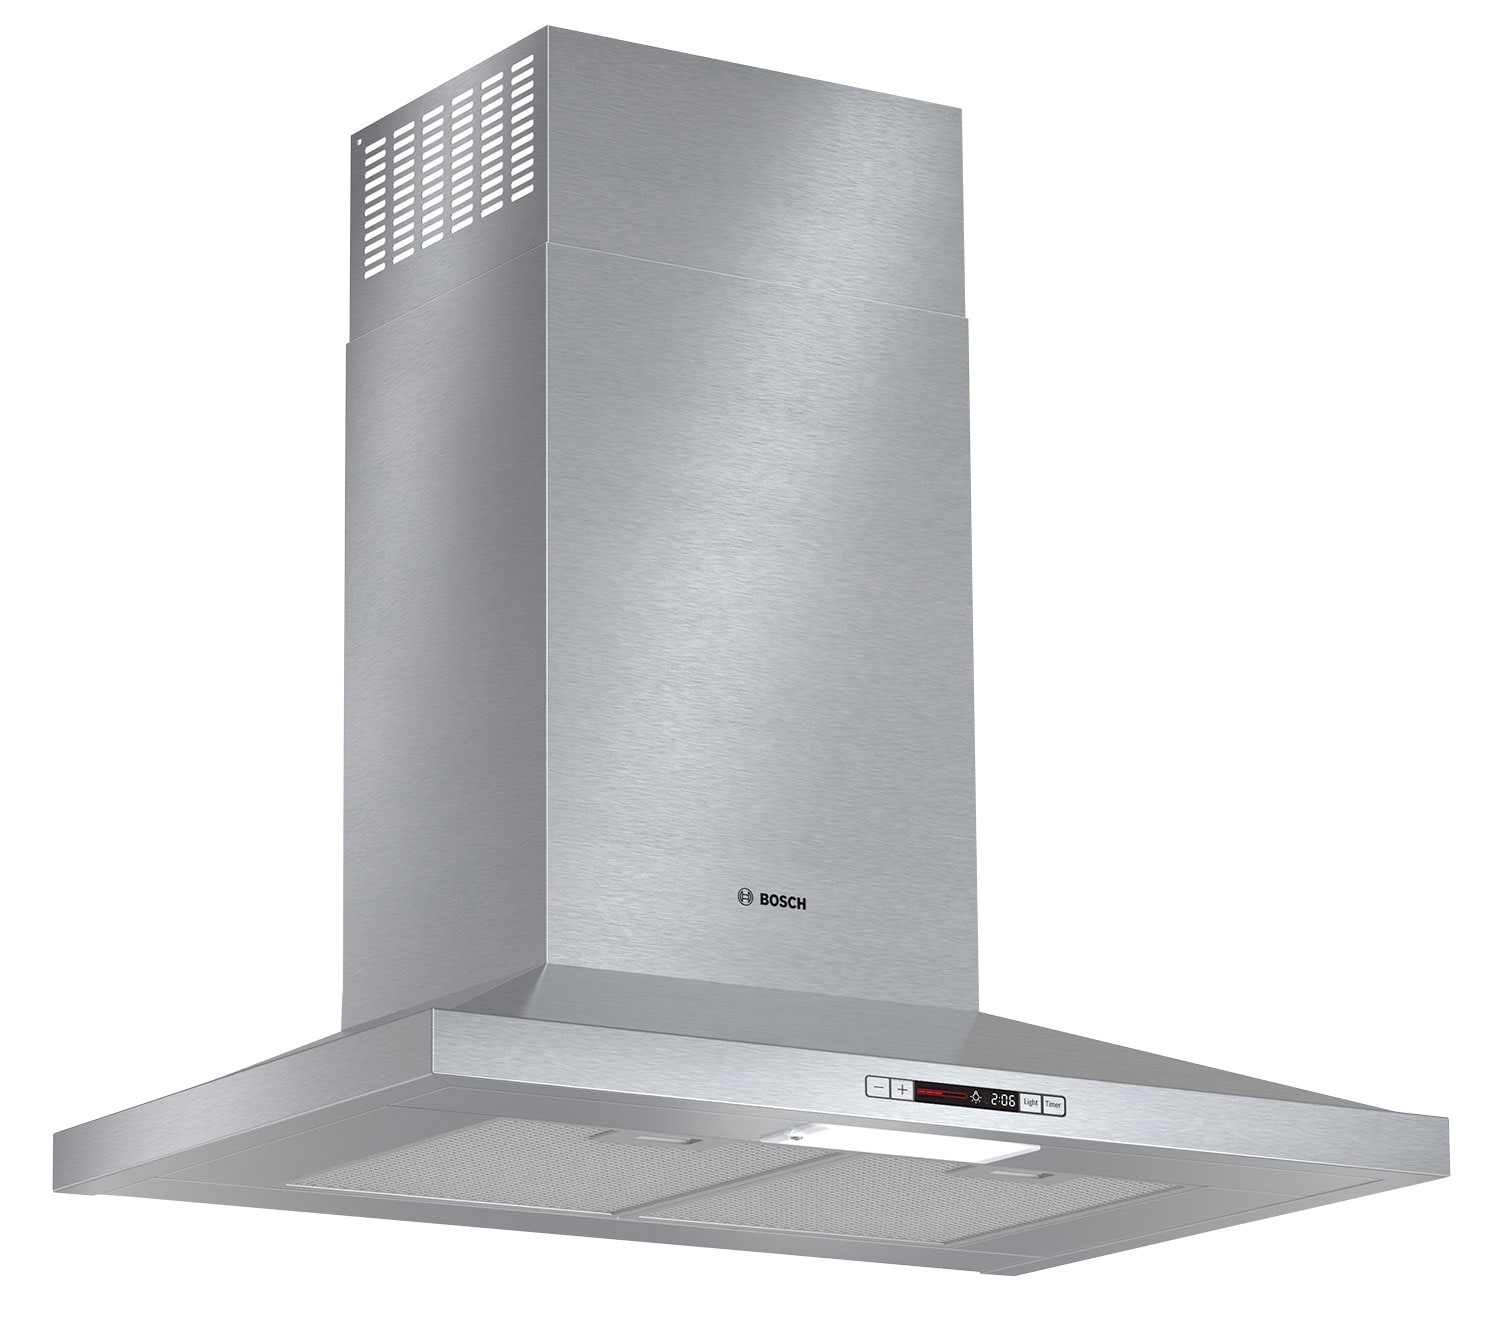 Cooking Products - Bosch Stainless Steel Canopy Range Hood - HCP30651UC